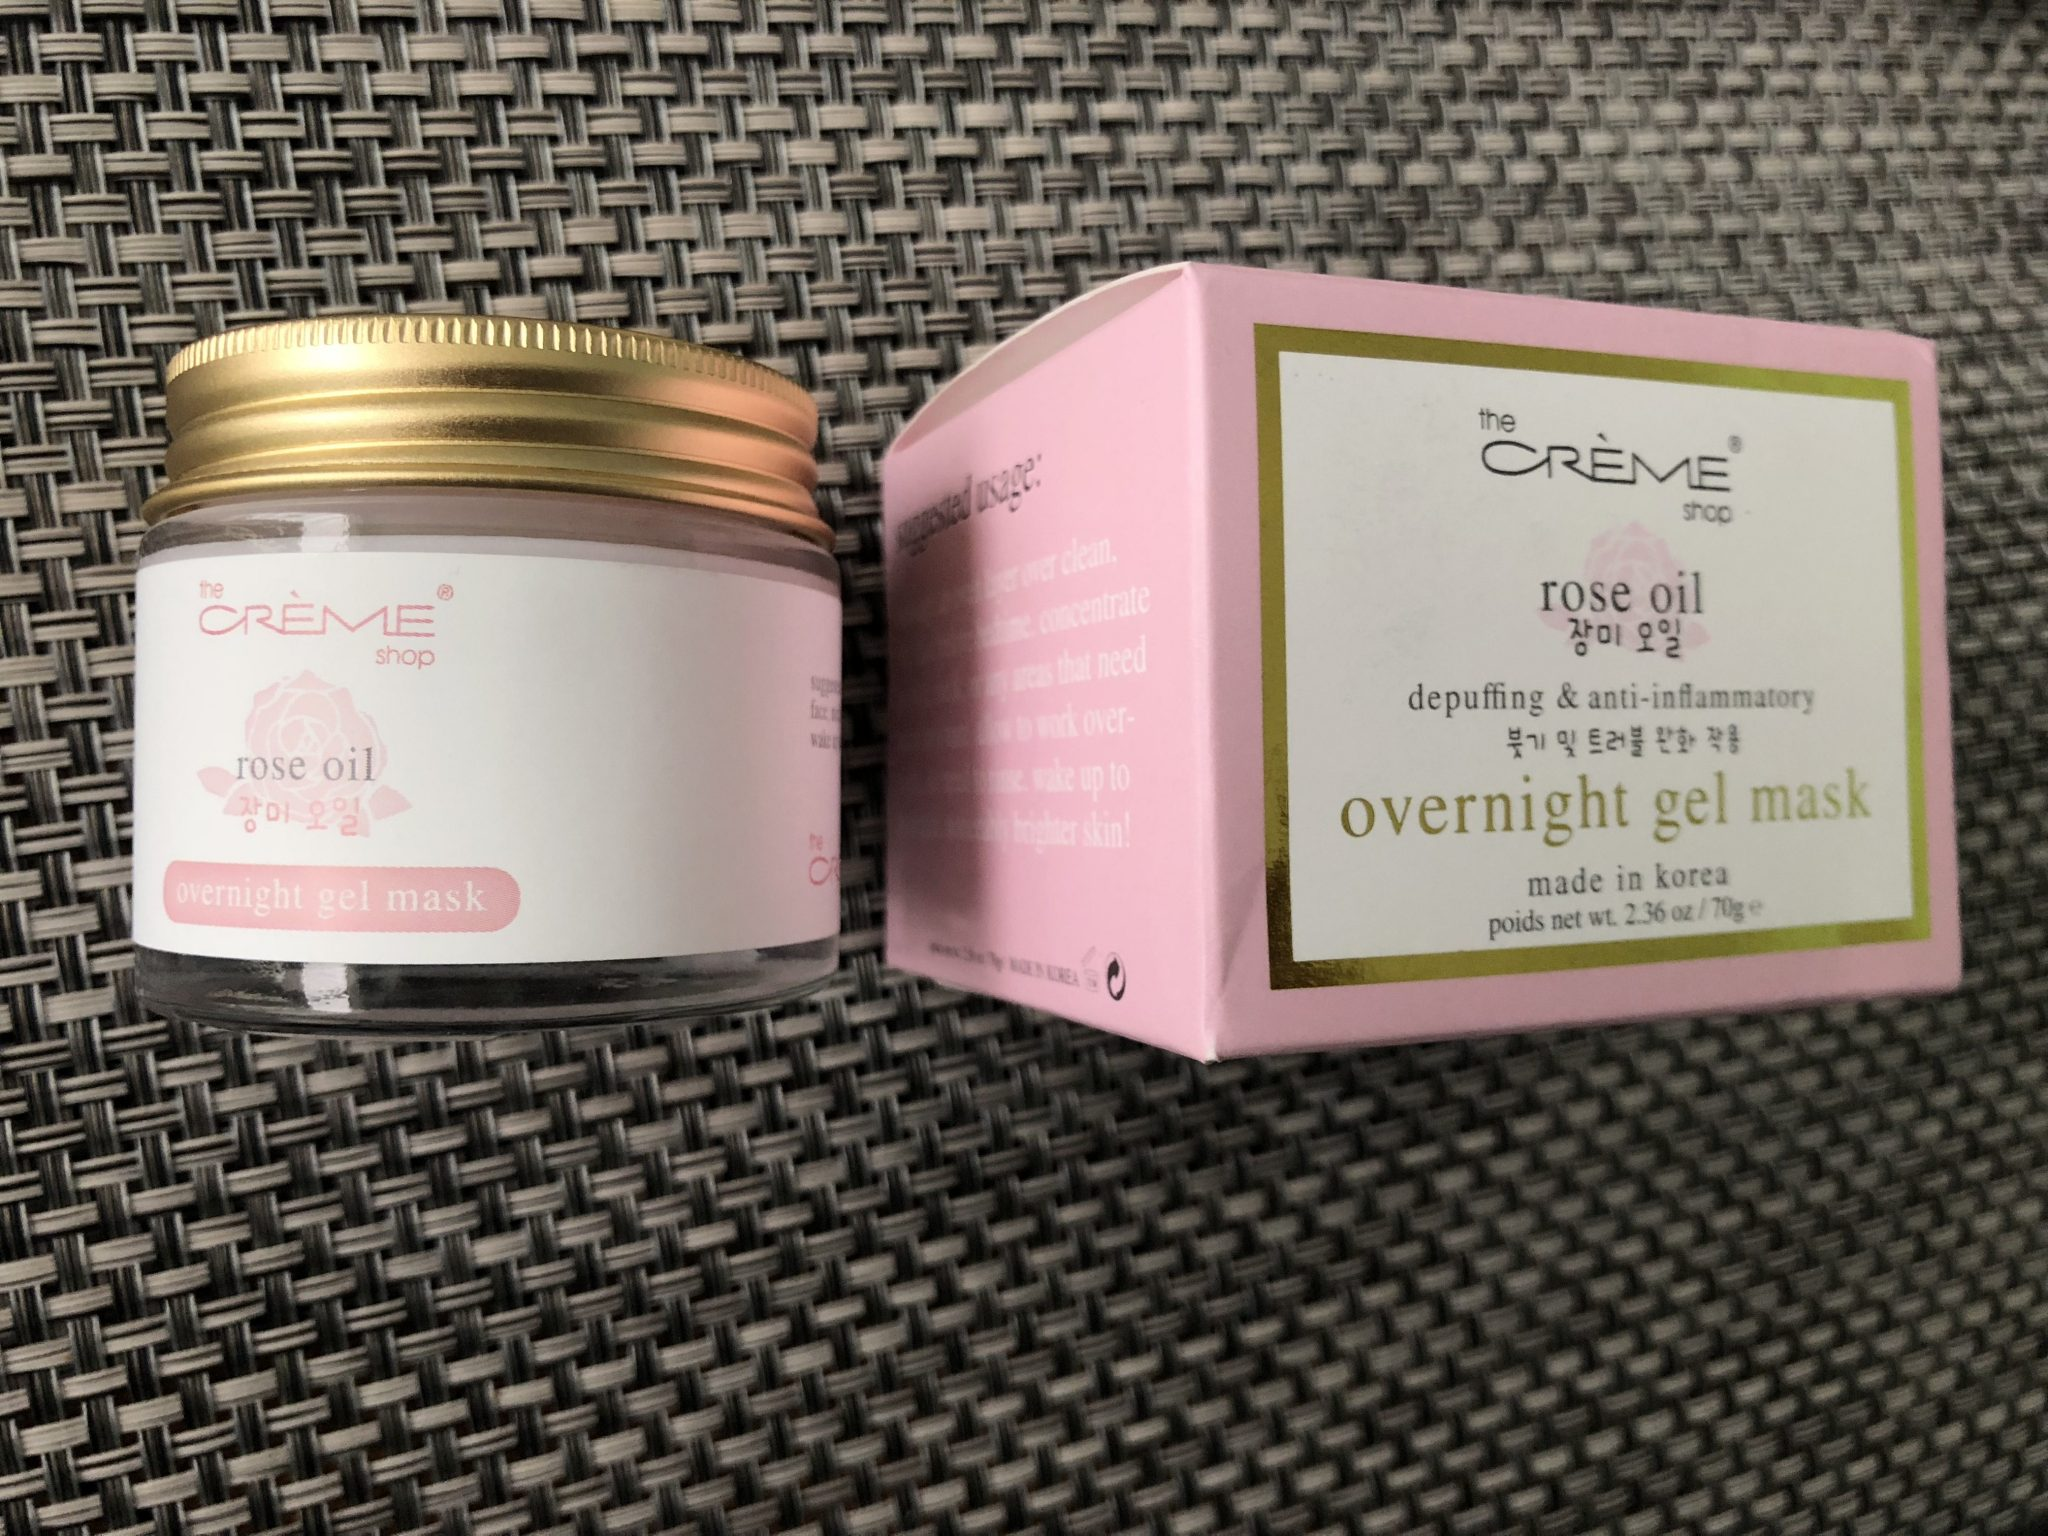 The Cream Shop Rose Oil Overnight Gel Mask - My personal